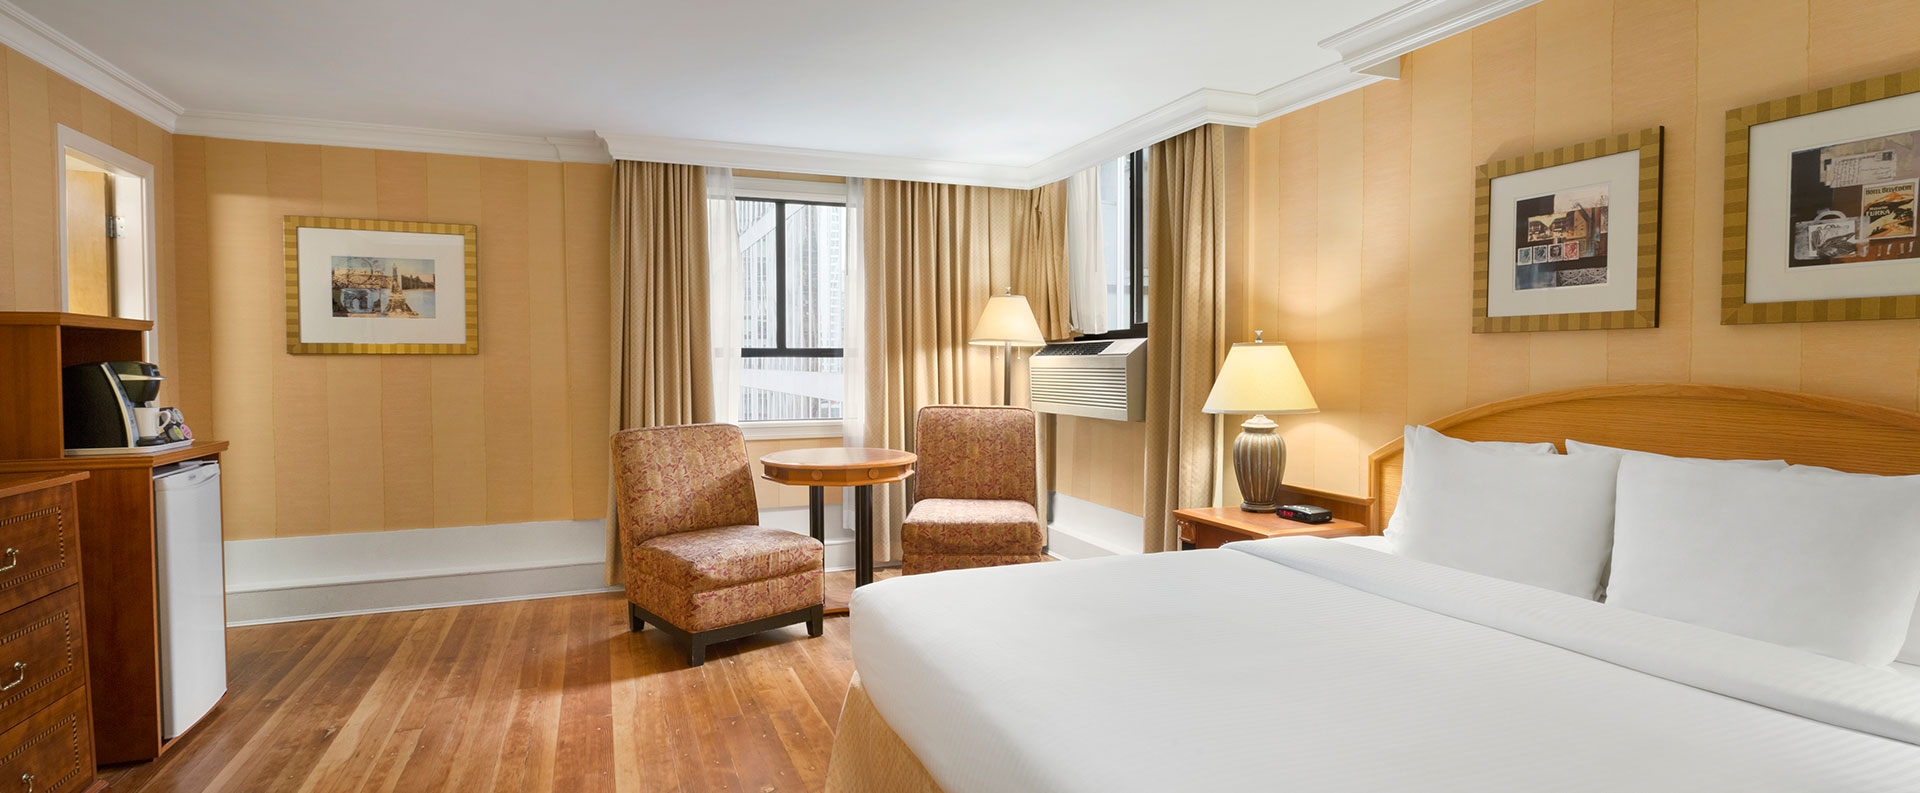 The Standard Queen room at Days Inn Vancouver Downtown features hardwood floors, comfortable chairs and tables arranged in a sitting area by the window and an air conditioner.